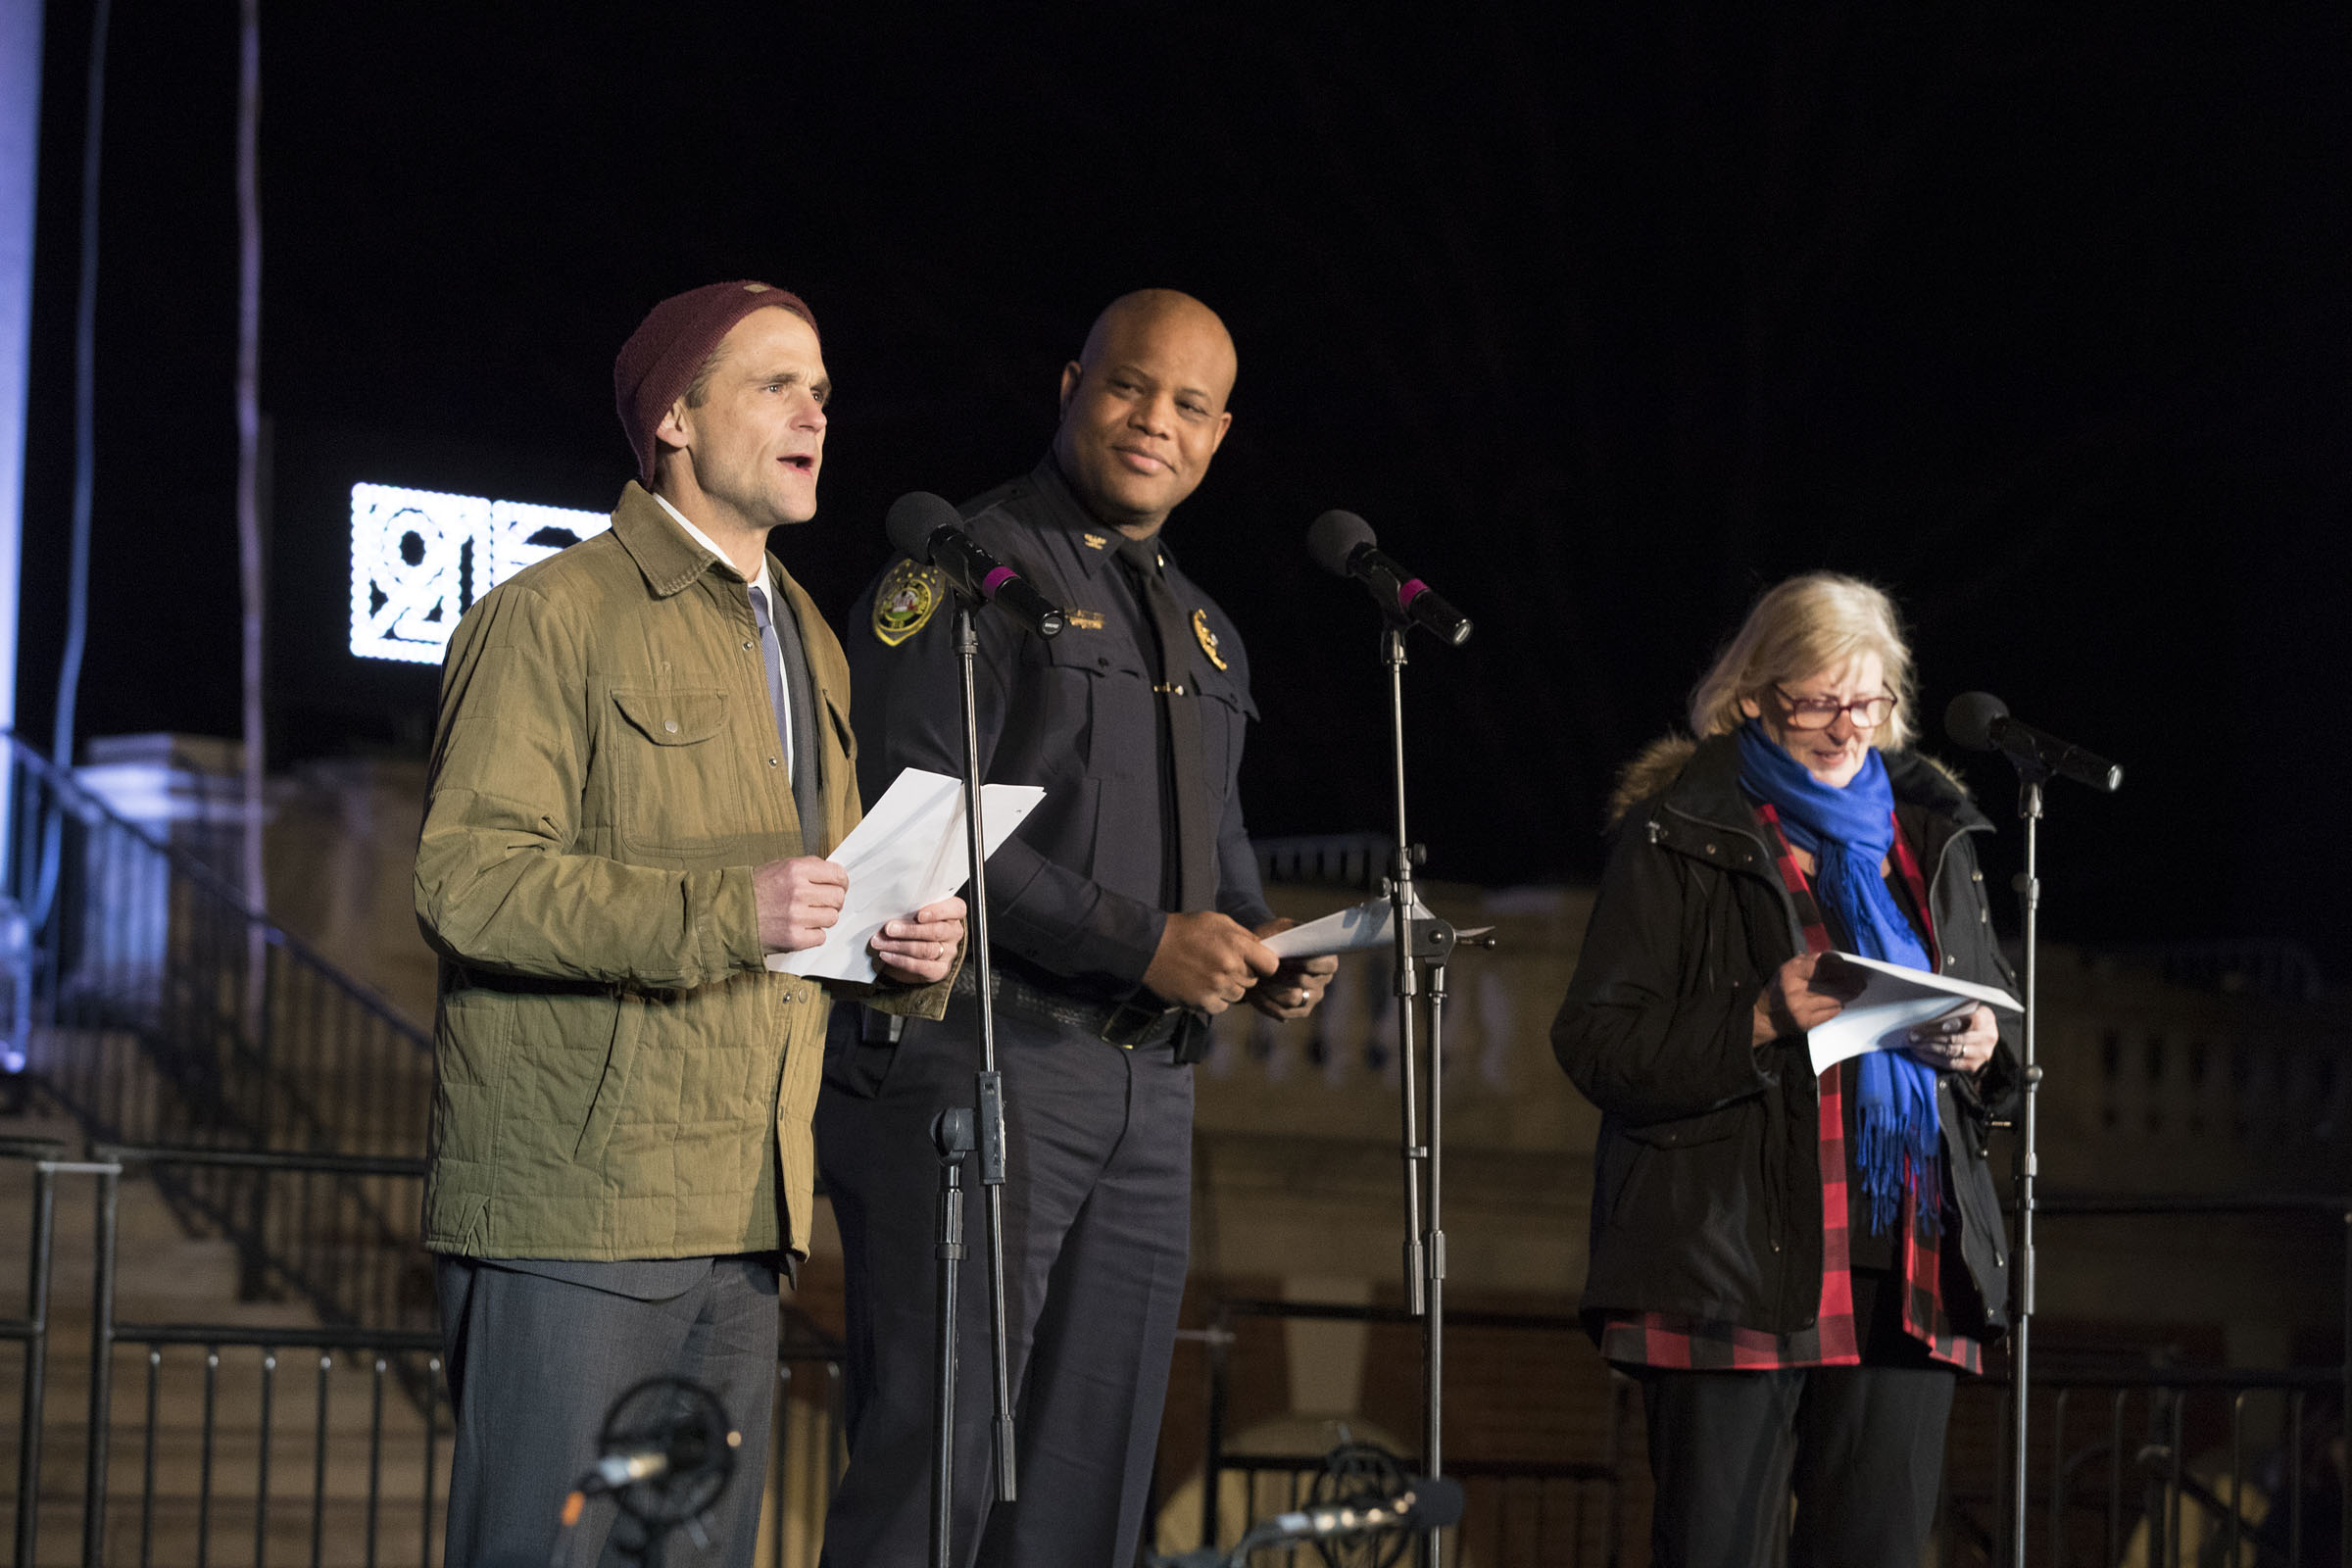 Each year students write a special poem and invite surprise guests to recite it. This year President Jim Ryan, Nursing School Dean Dorie Fontaine and University Police Chief Tommye Sutton did the honors.